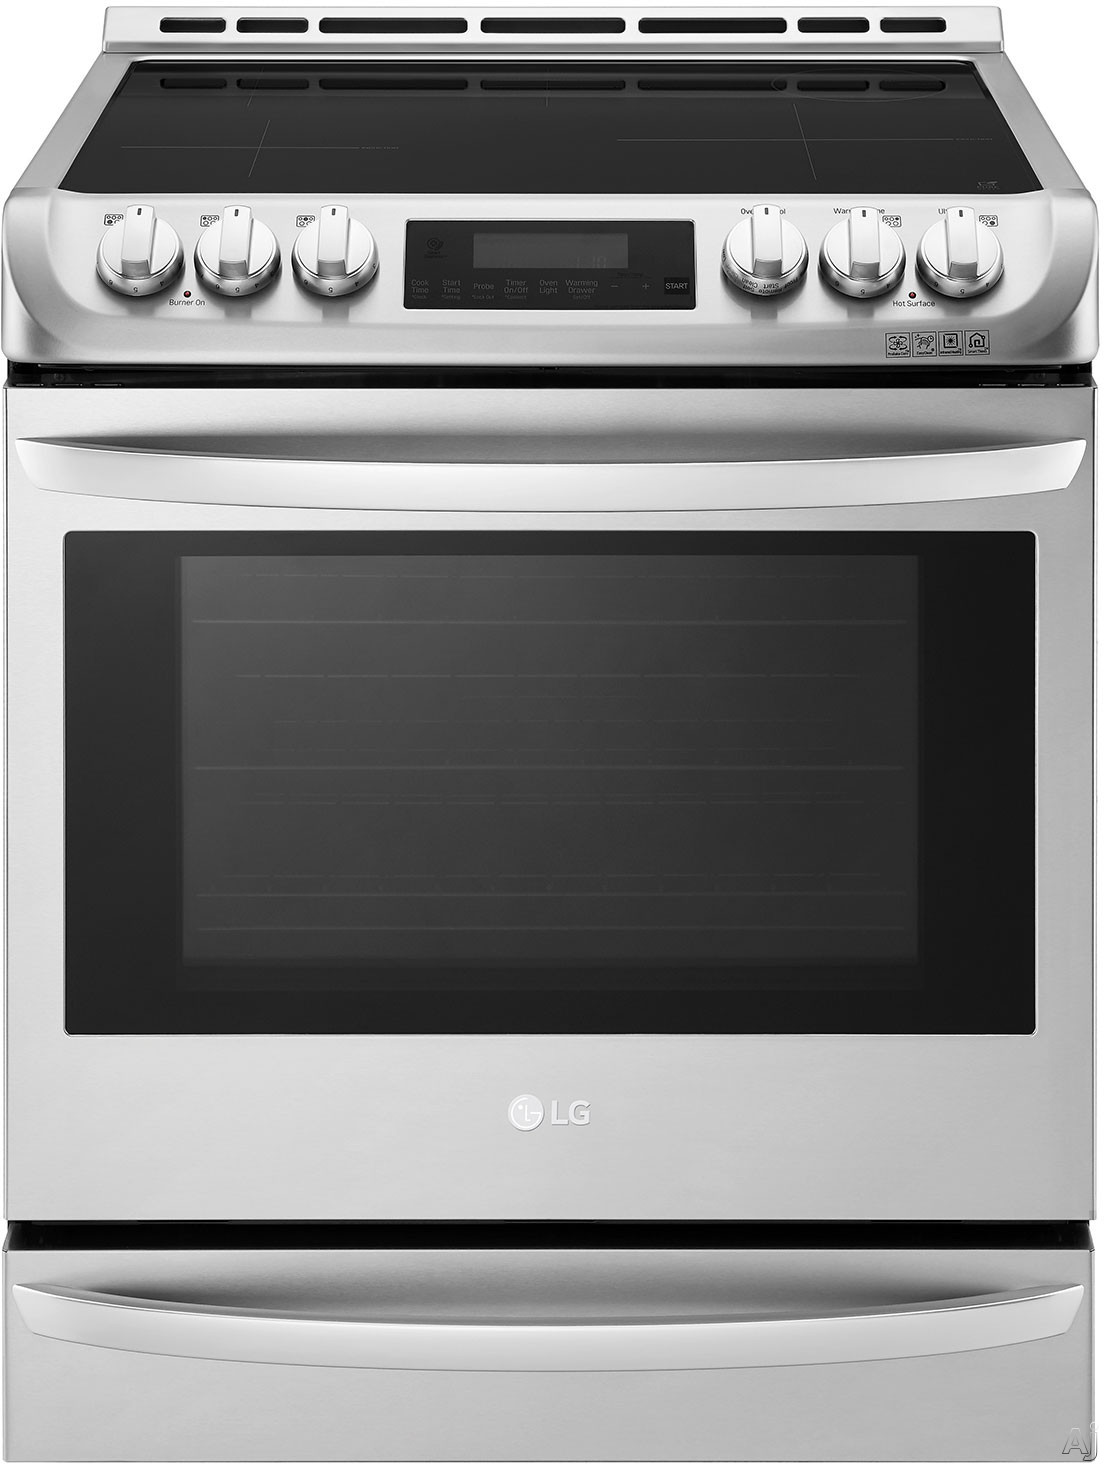 LG LSE4617ST 30 Inch Slide-In Induction Range with 6.3 cu. ft. Capacity, 5 Cooktop Zones, Infrared Grill, 11 Cooking Modes, ProBake Convection, Pizza Mode, Proof Mode, Wi Fi Connectivity, Self Clean a